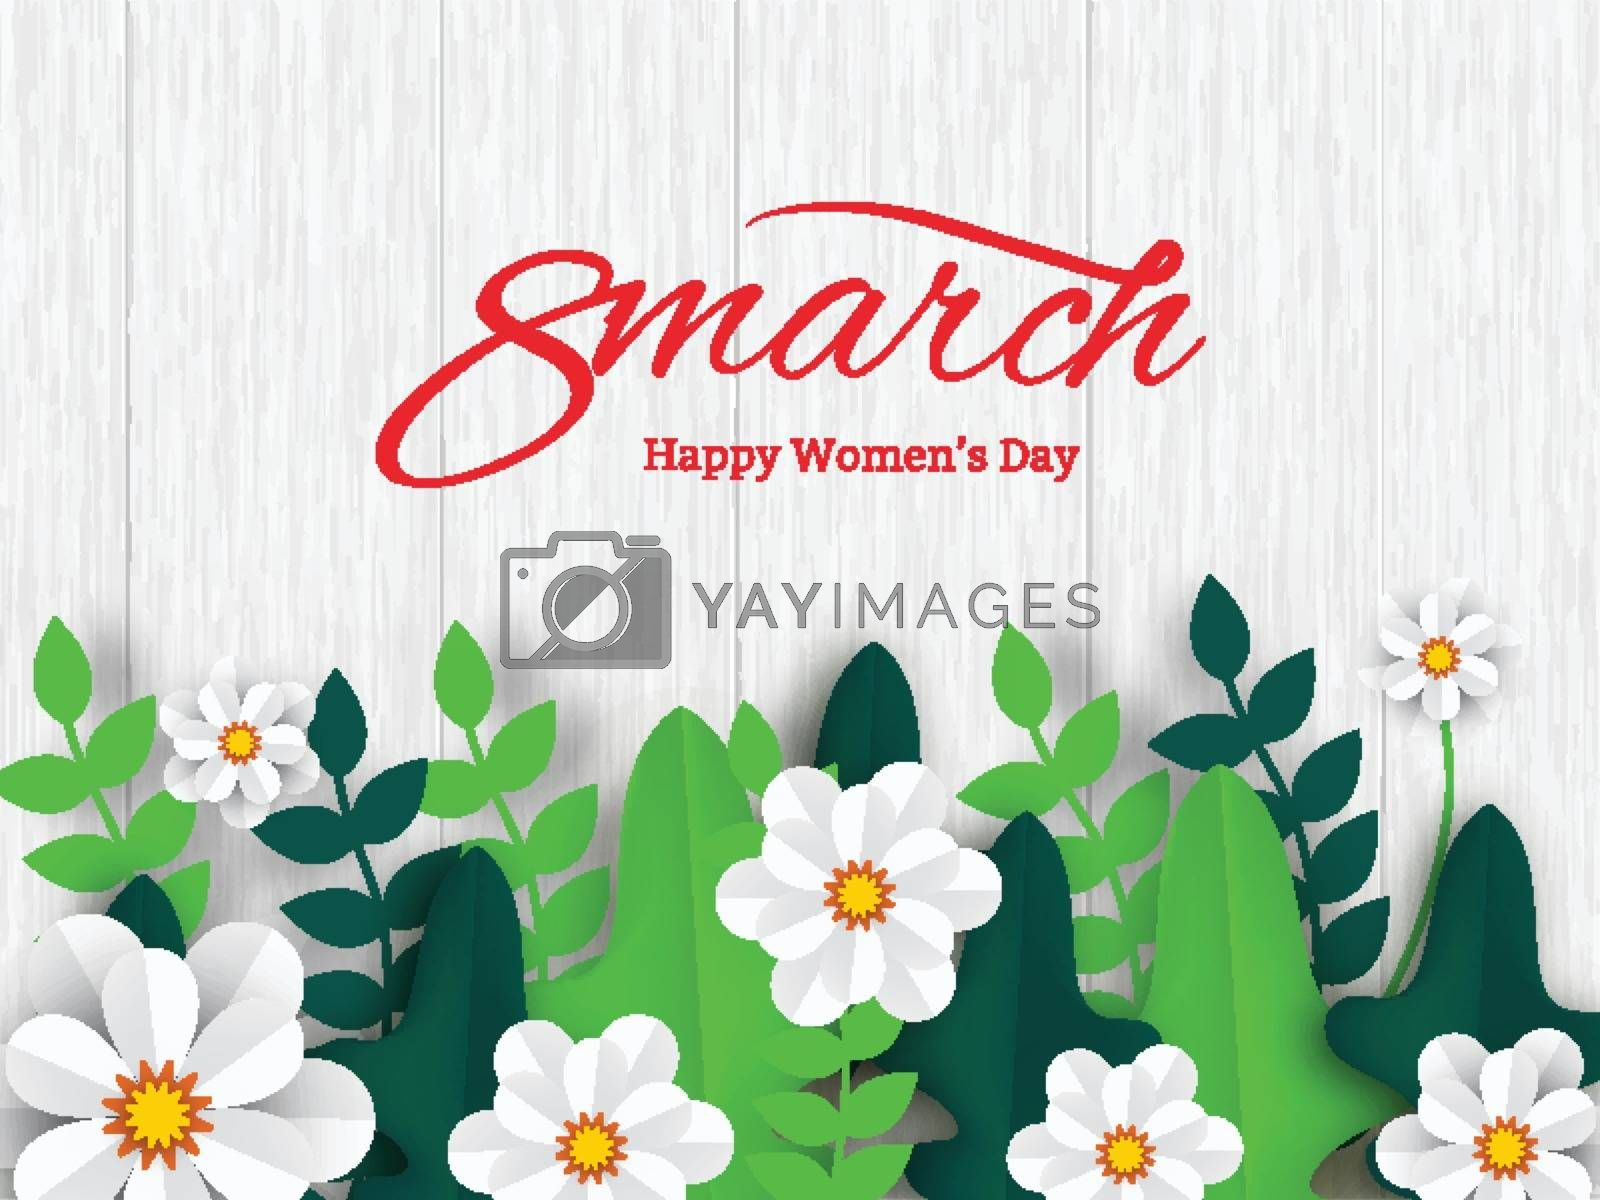 Stylish lettering of 8 march on wooden texture background decorated with paper flower for Women's Day celebration poster or banner design.